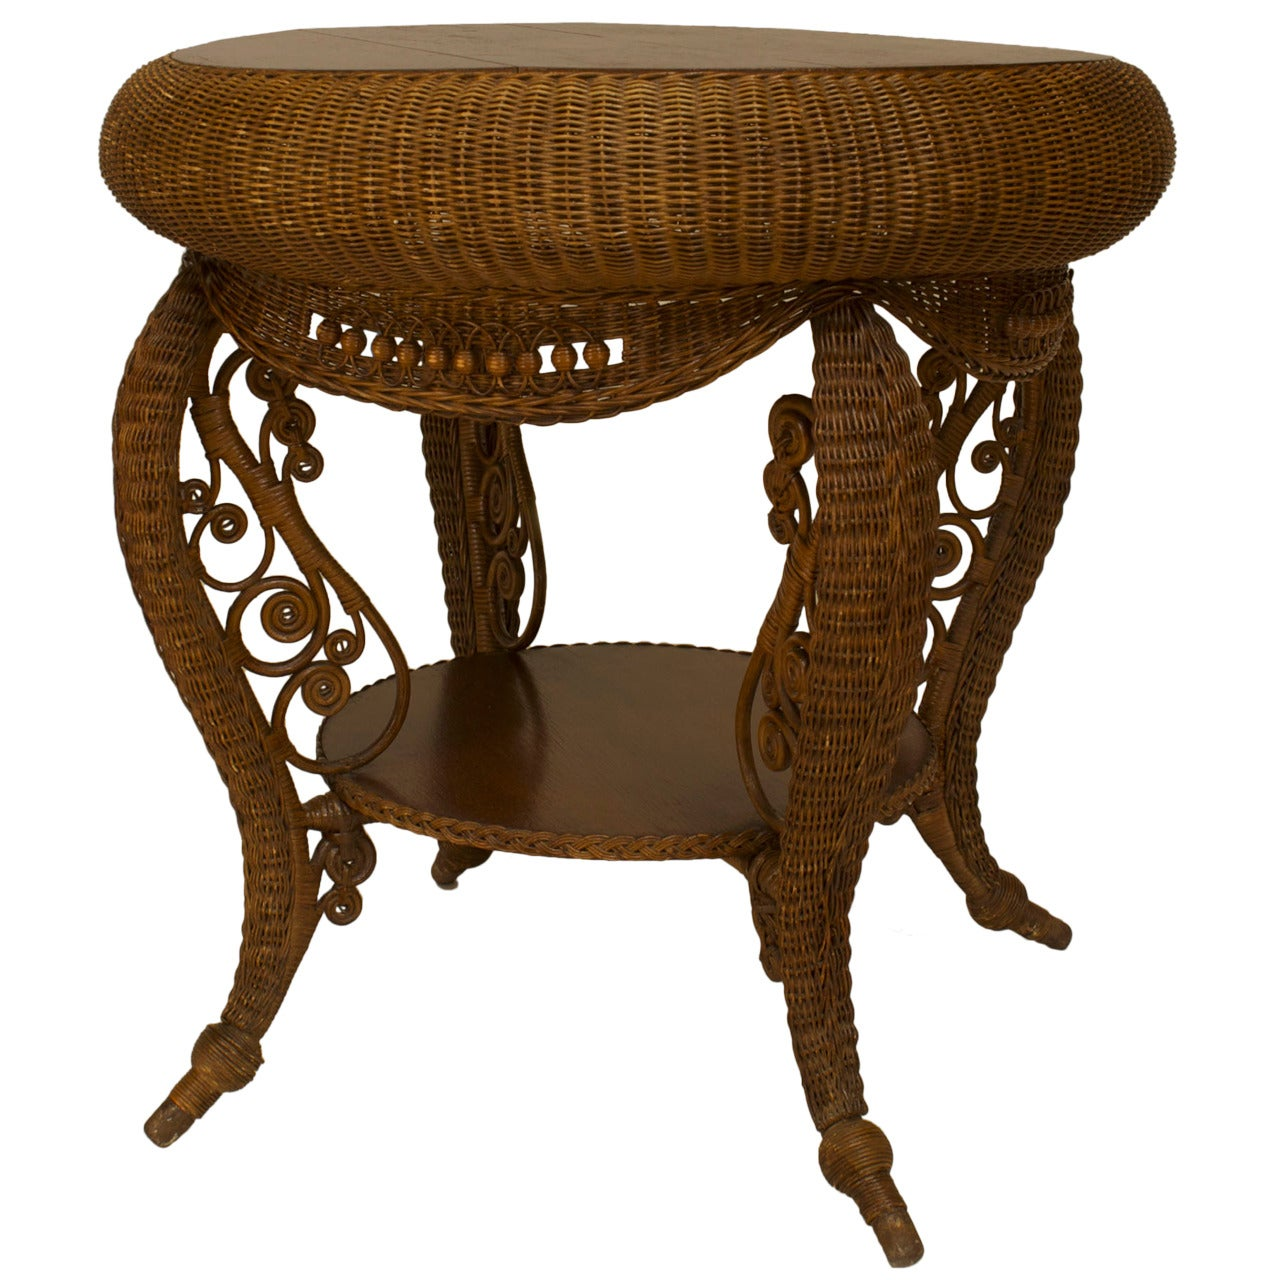 Small 19th c. American Heywood-Wakefield Oak and Wicker Table